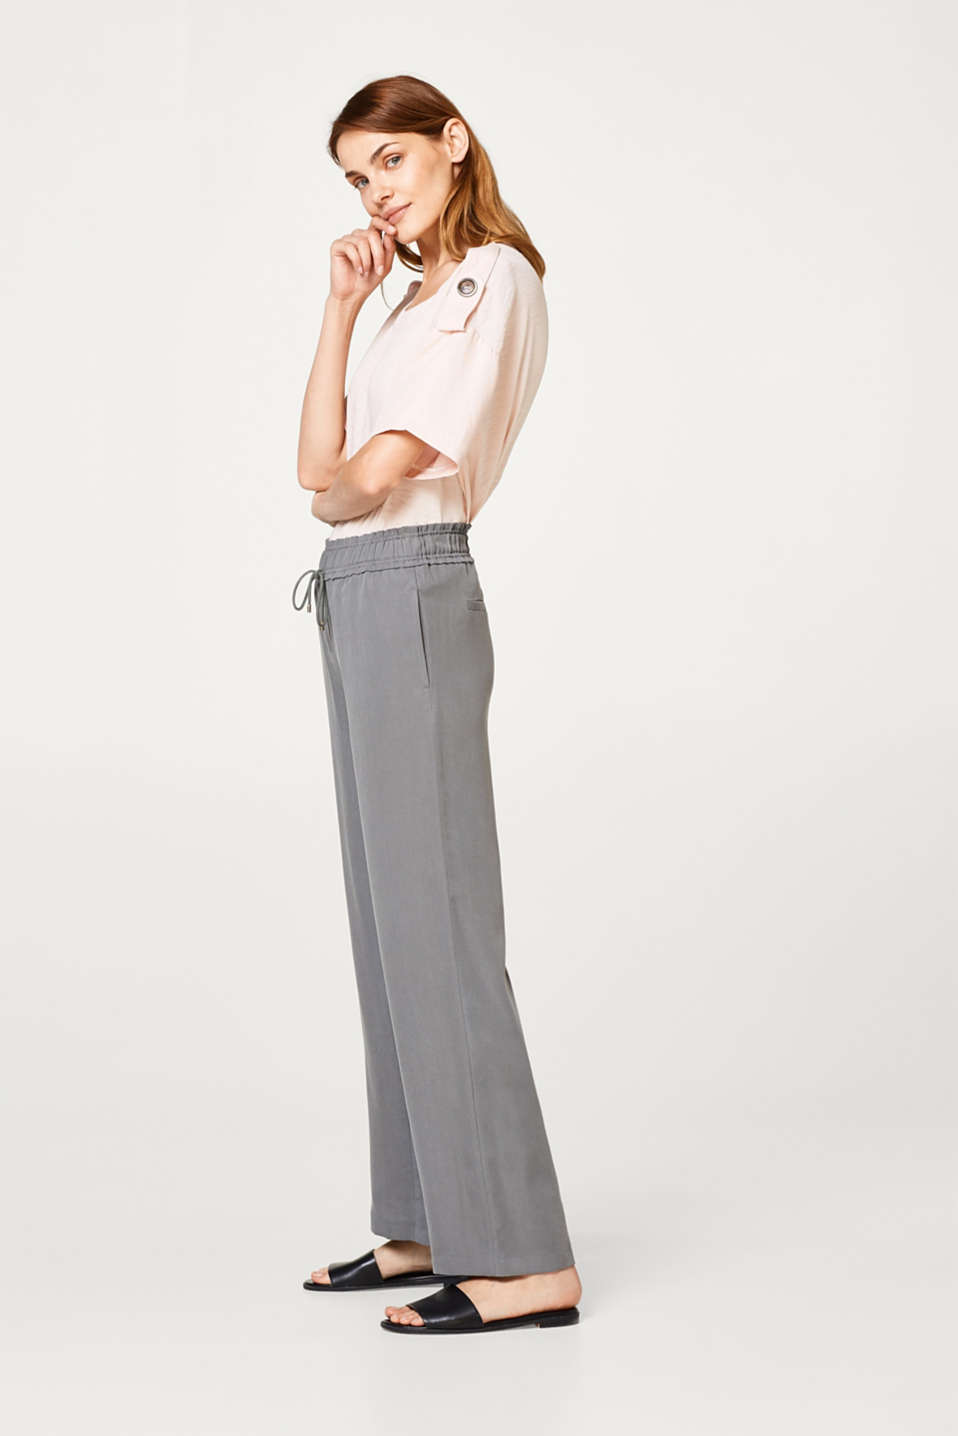 Esprit - Flowing palazzo trousers with an elasticated waistband